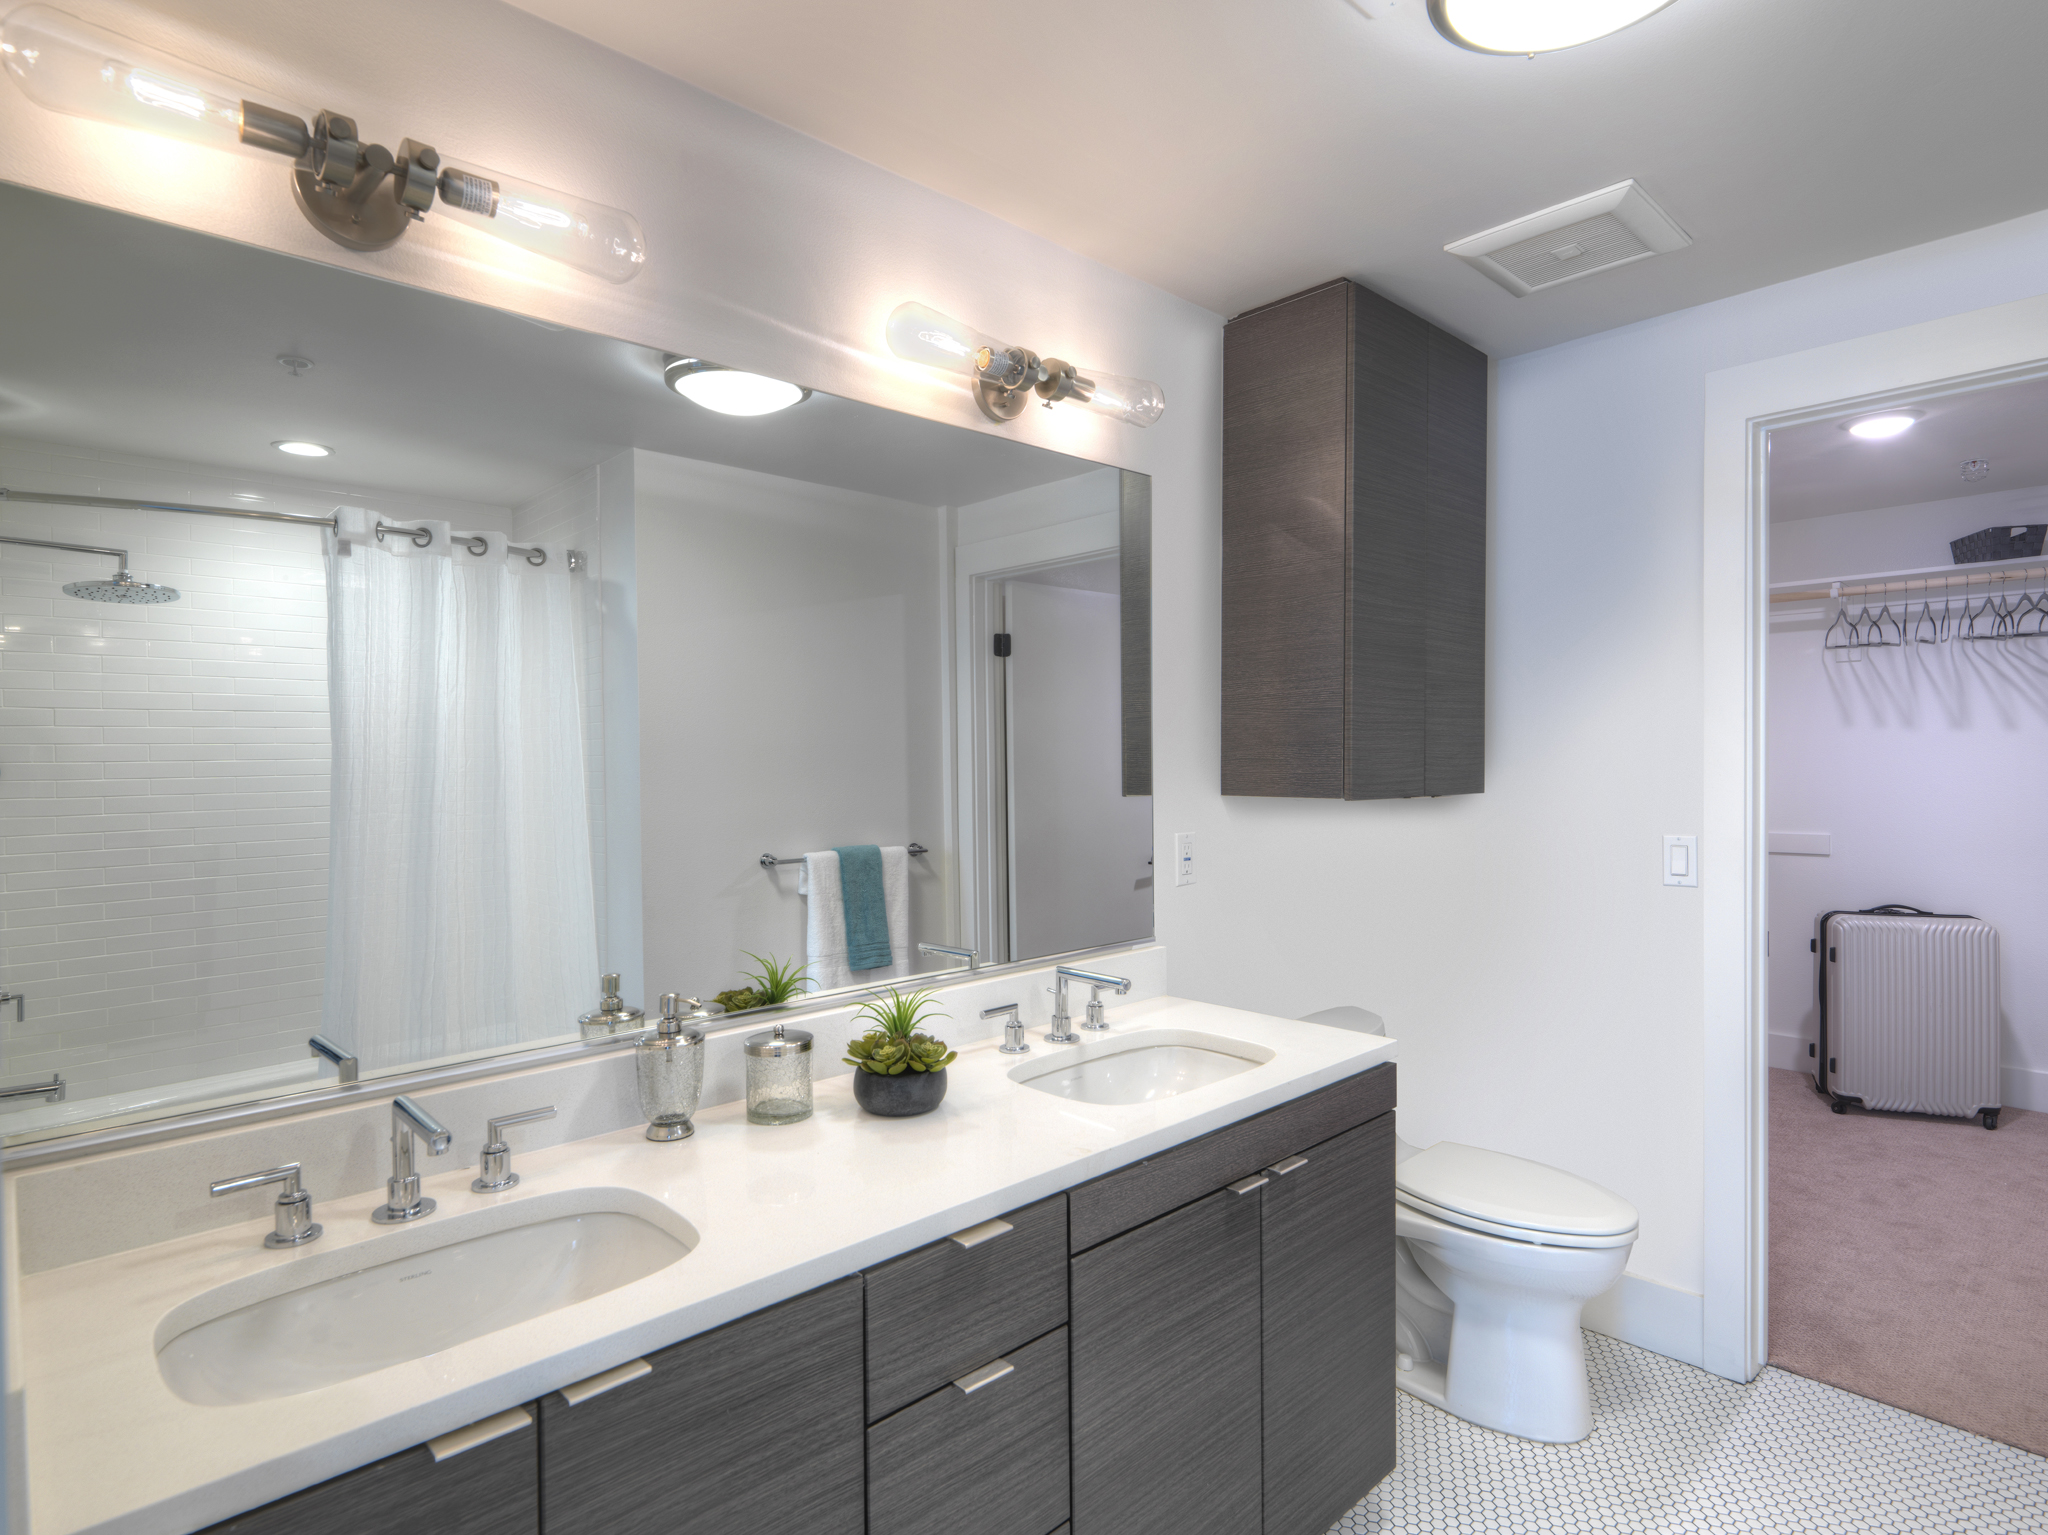 6-The-Camden-Apartments-Hollywood-CA-Bathroom-Quartz-Countertops.jpg